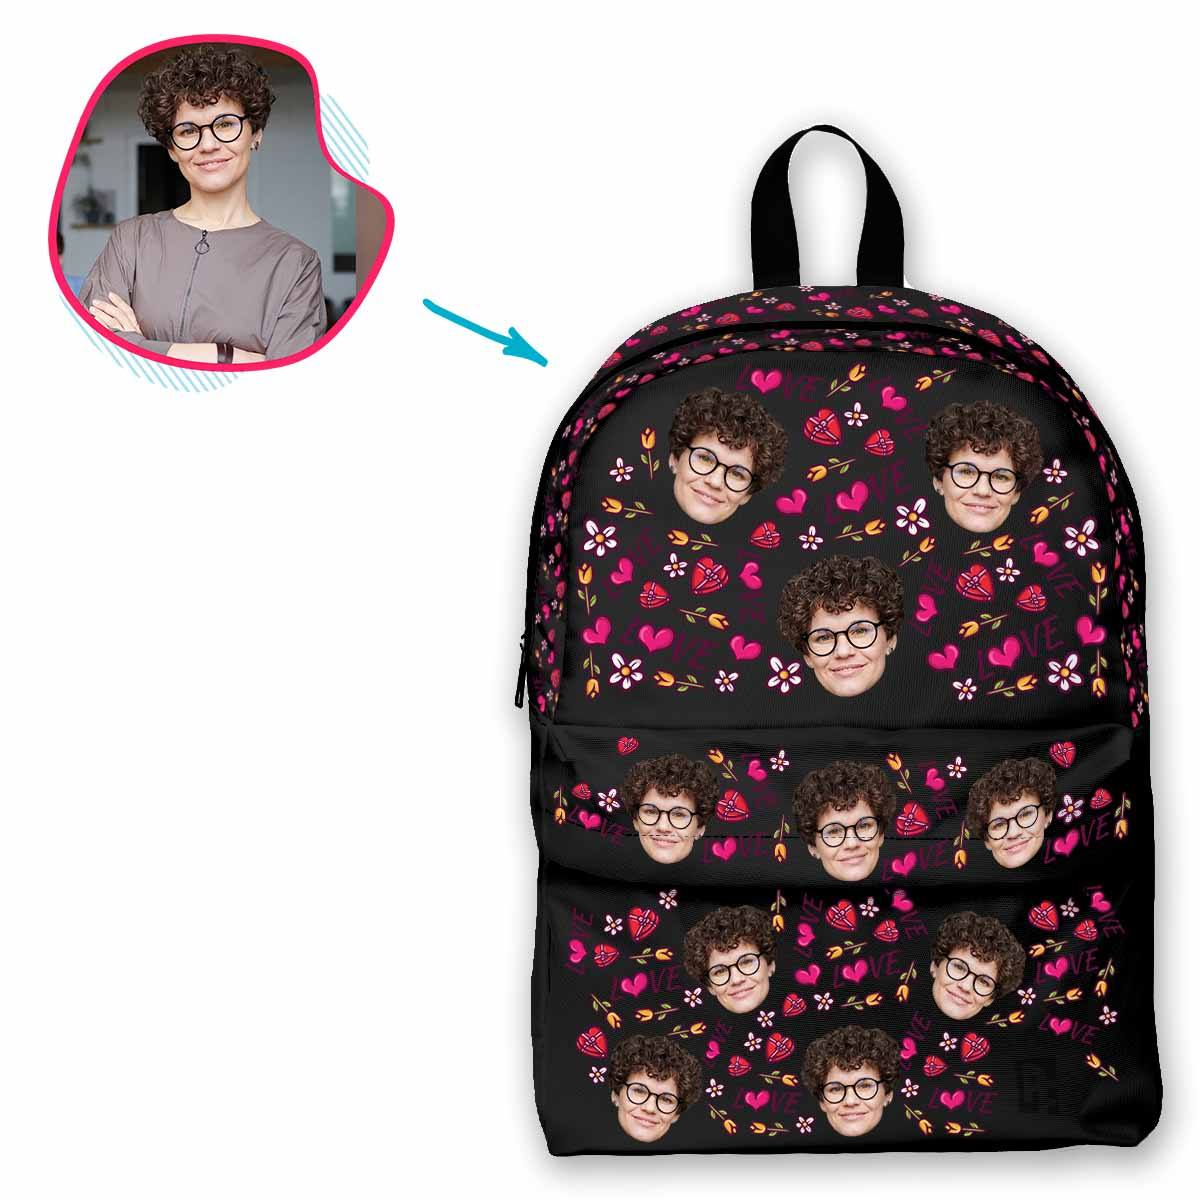 dark Hearts and Flowers classic backpack personalized with photo of face printed on it